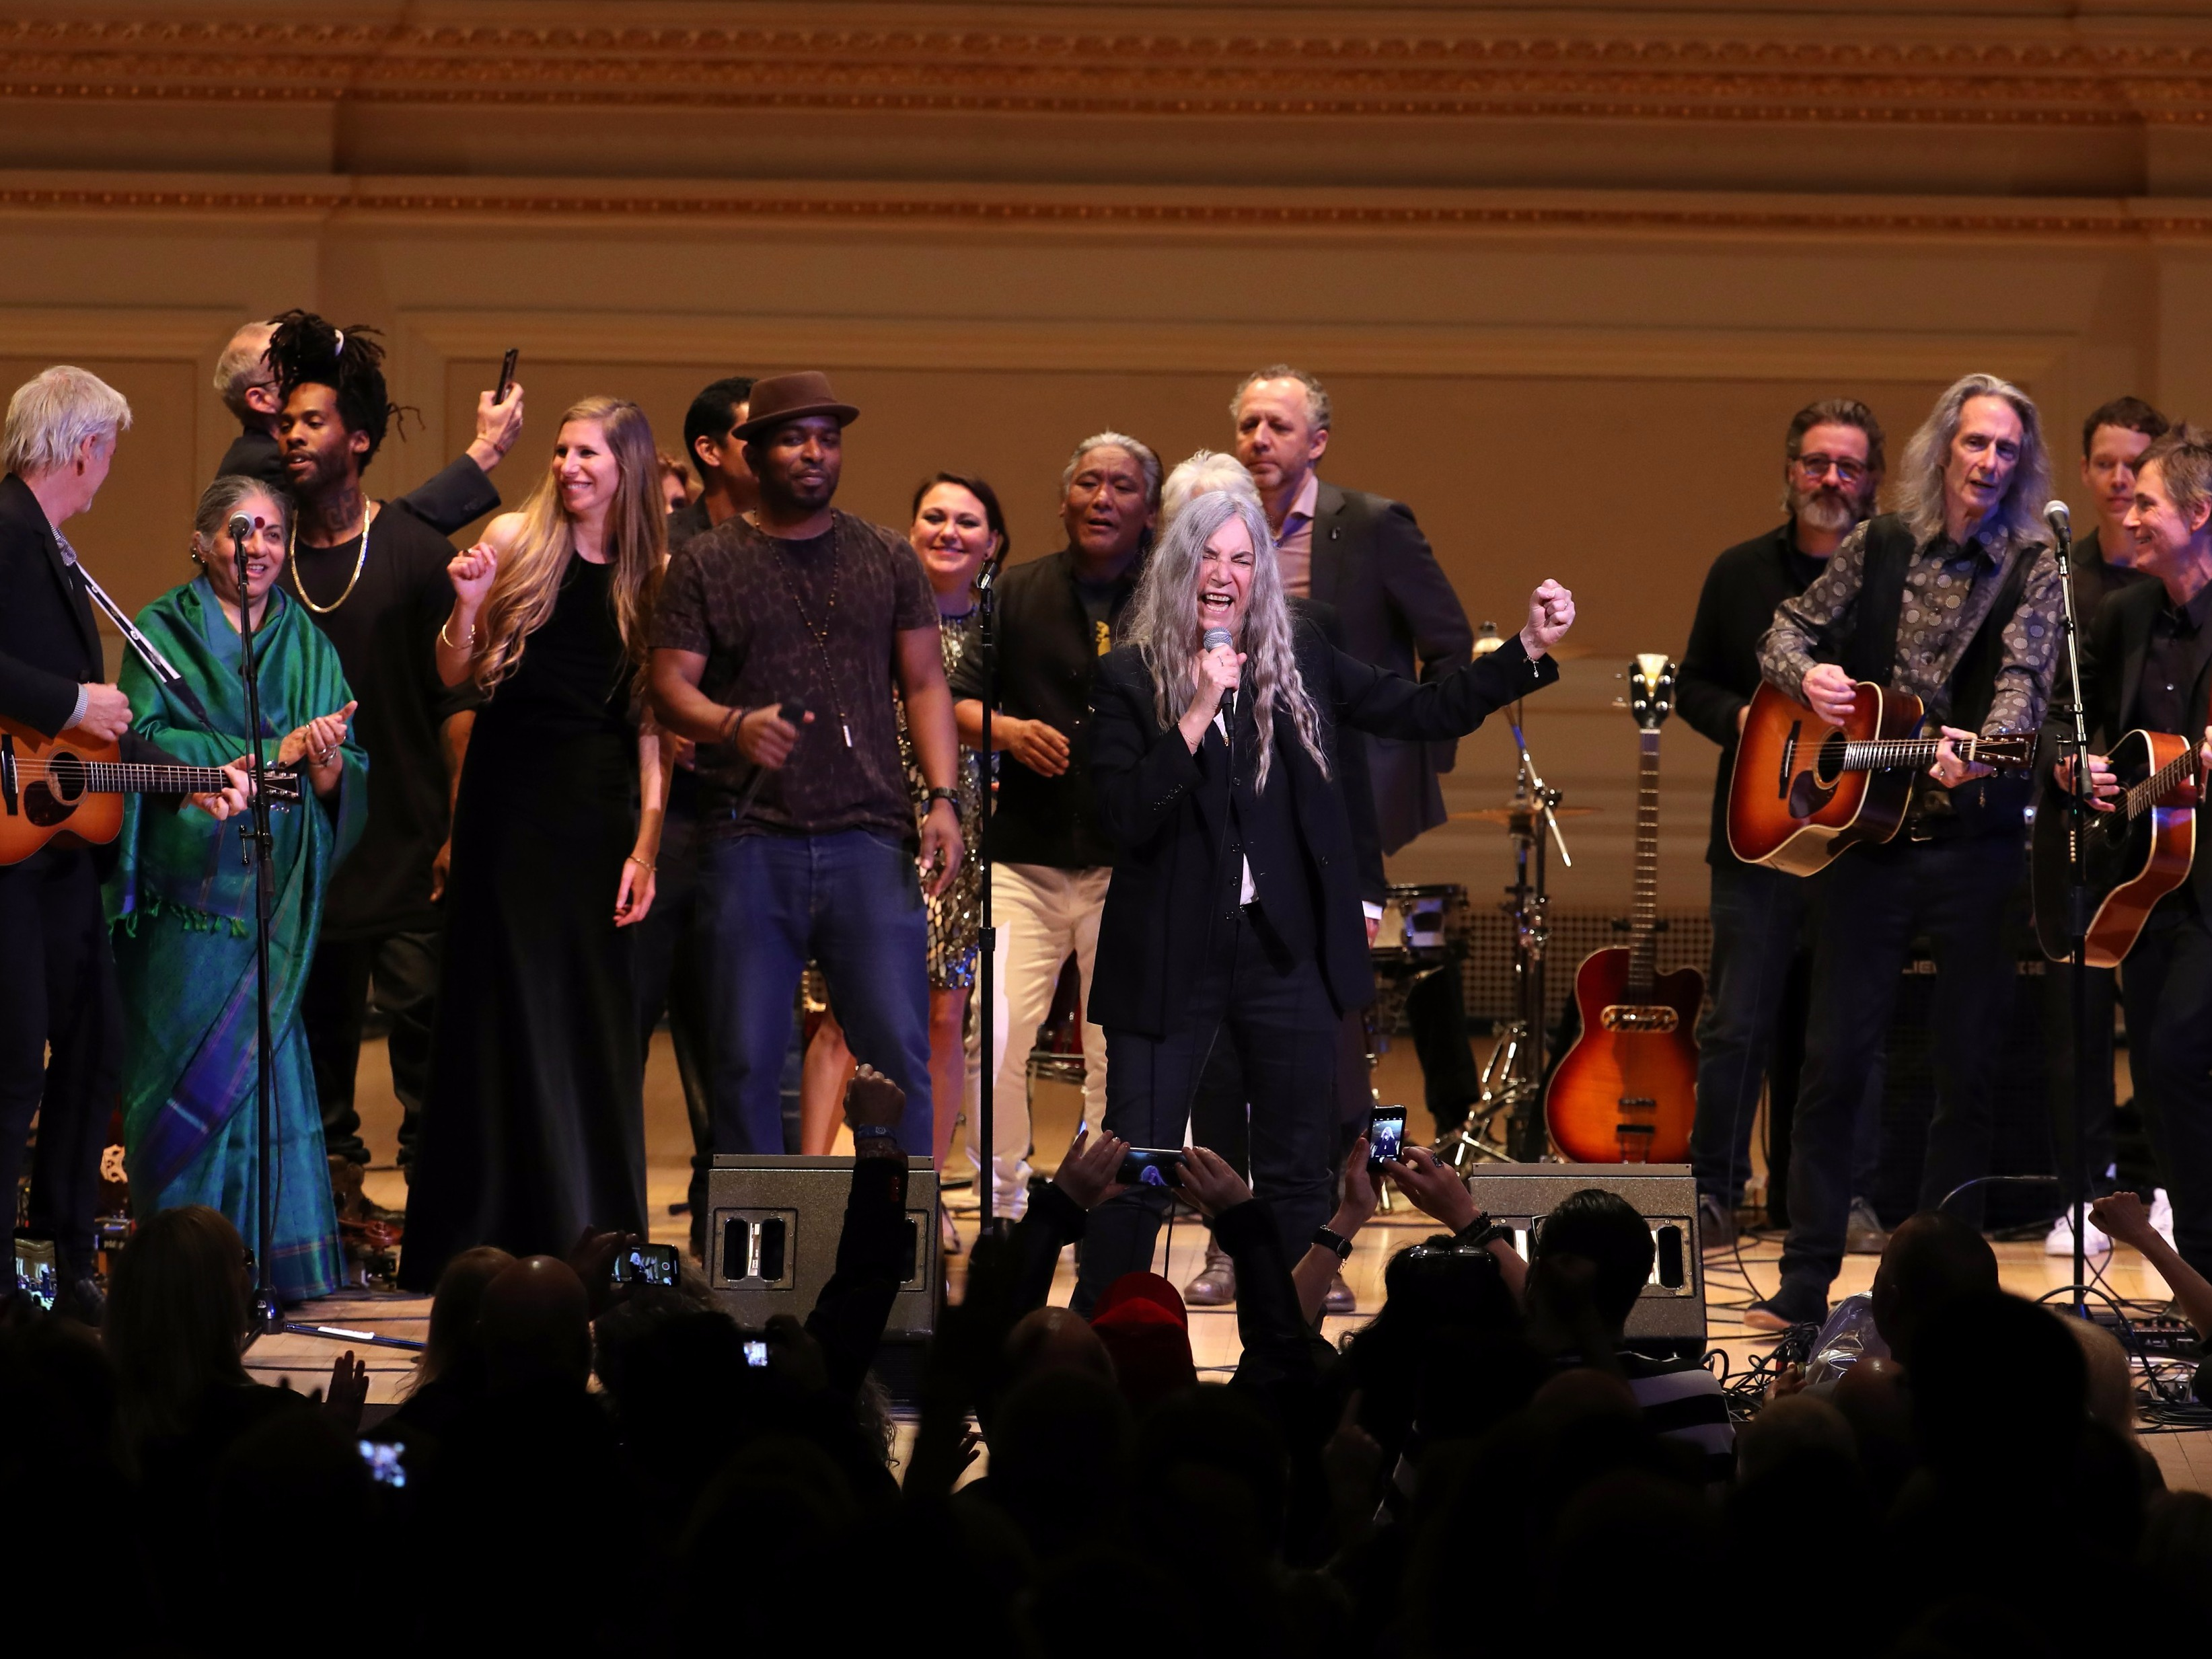 Pathway To Paris Lights Up Carnegie Hall with Guests Patti Smith, Michael Stipe, and More